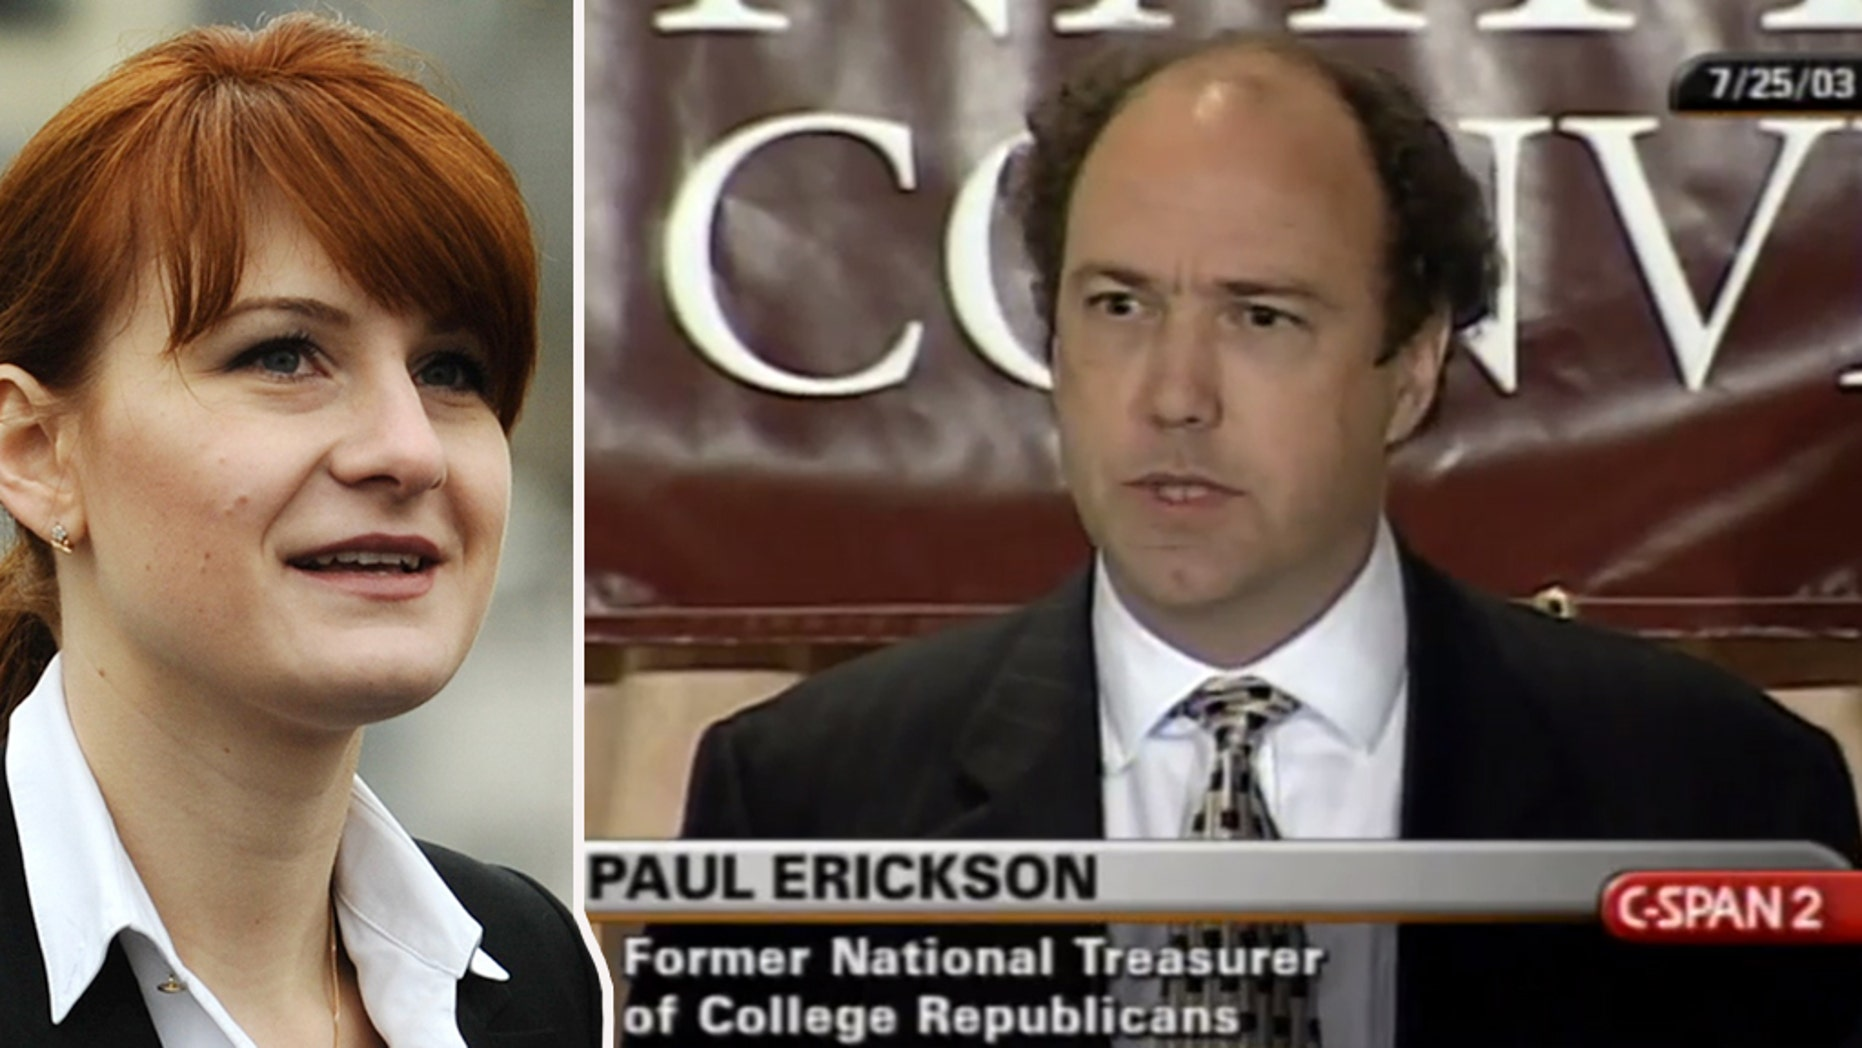 The South Dakota U.S. Attorney's Office said Wednesday that Paul Erickson, right, pleaded not guilty to 11 counts of wire fraud and money laundering. The charges appear unrelated to the case of his girlfriend Maria Butina, left, whopleaded guilty in Decemberfor trying to infiltrate conservative political groups.